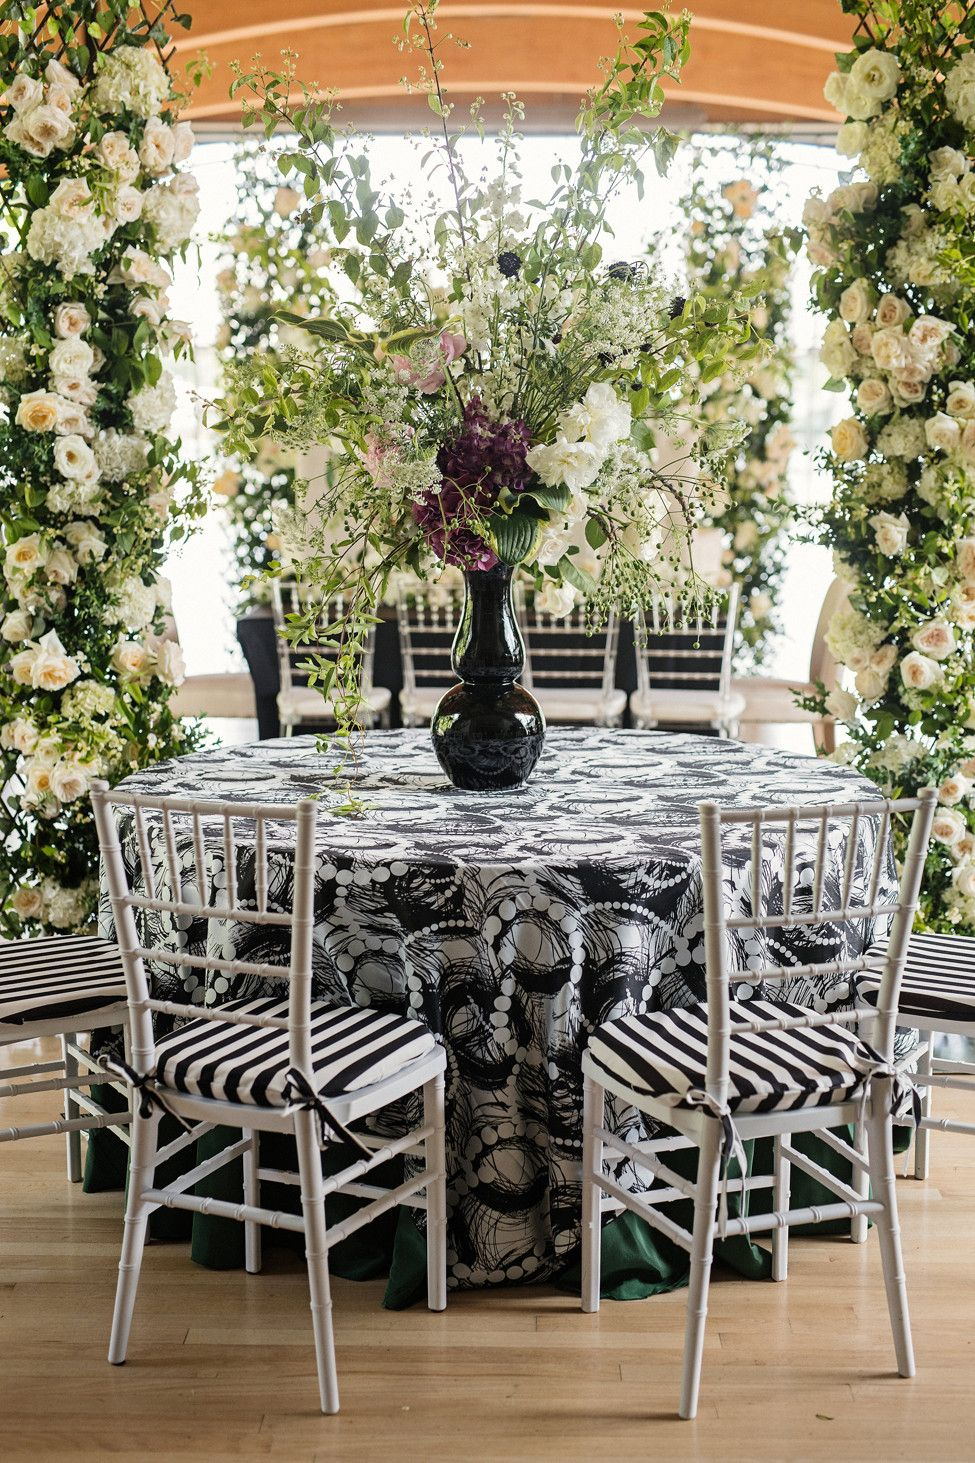 Styled Shoot Contemporary Romance Reception Table With Silver Chairs And Large Centerpiec Reception Table Decorations Large Centerpiece Wedding Flower Vase